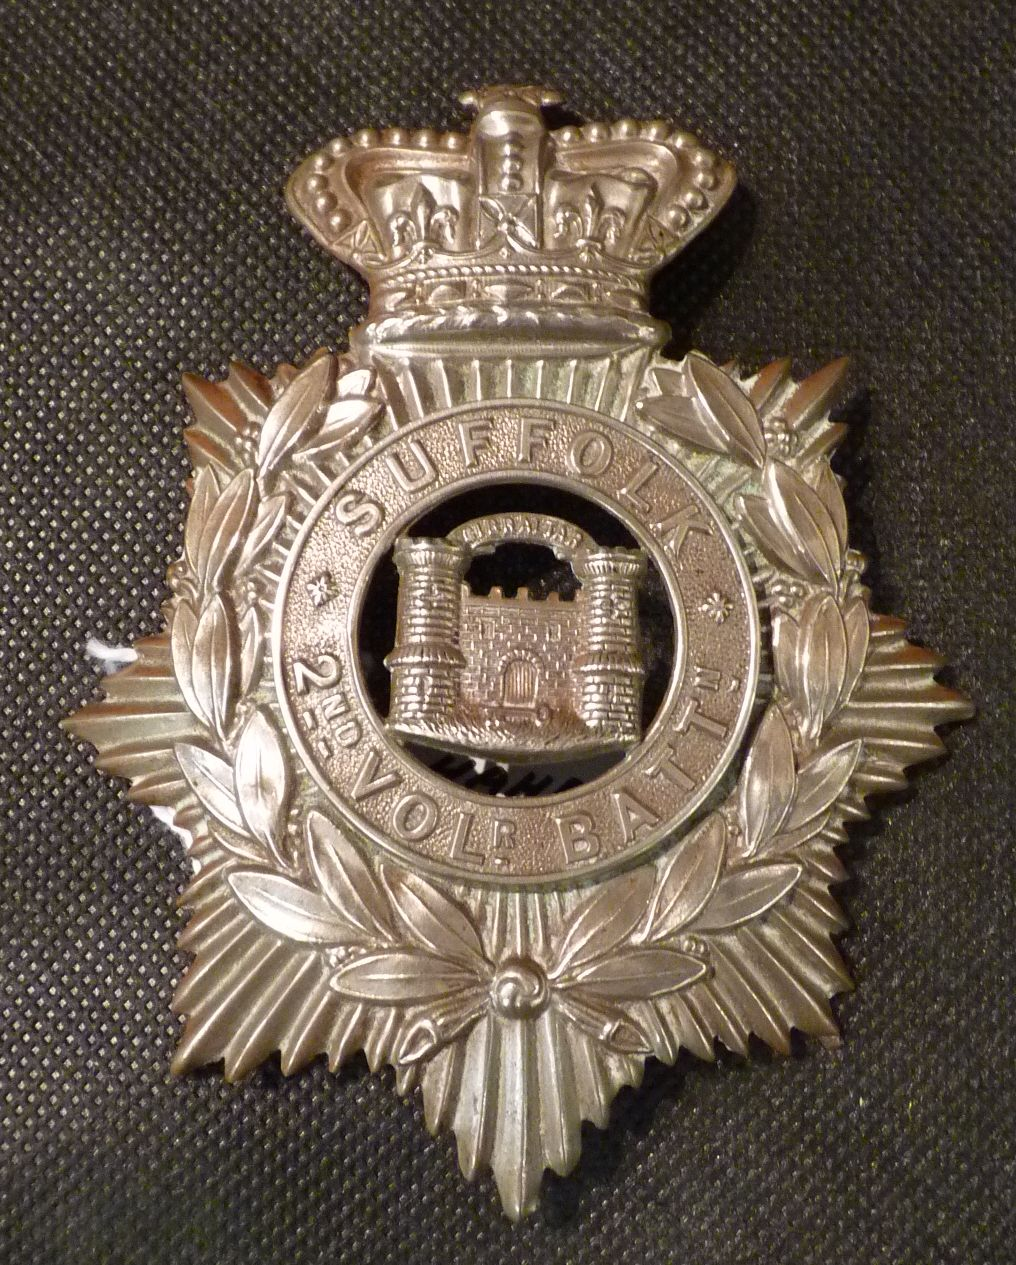 Cap badge of 2nd Volunteer Battalion of the Suffolk Regiment